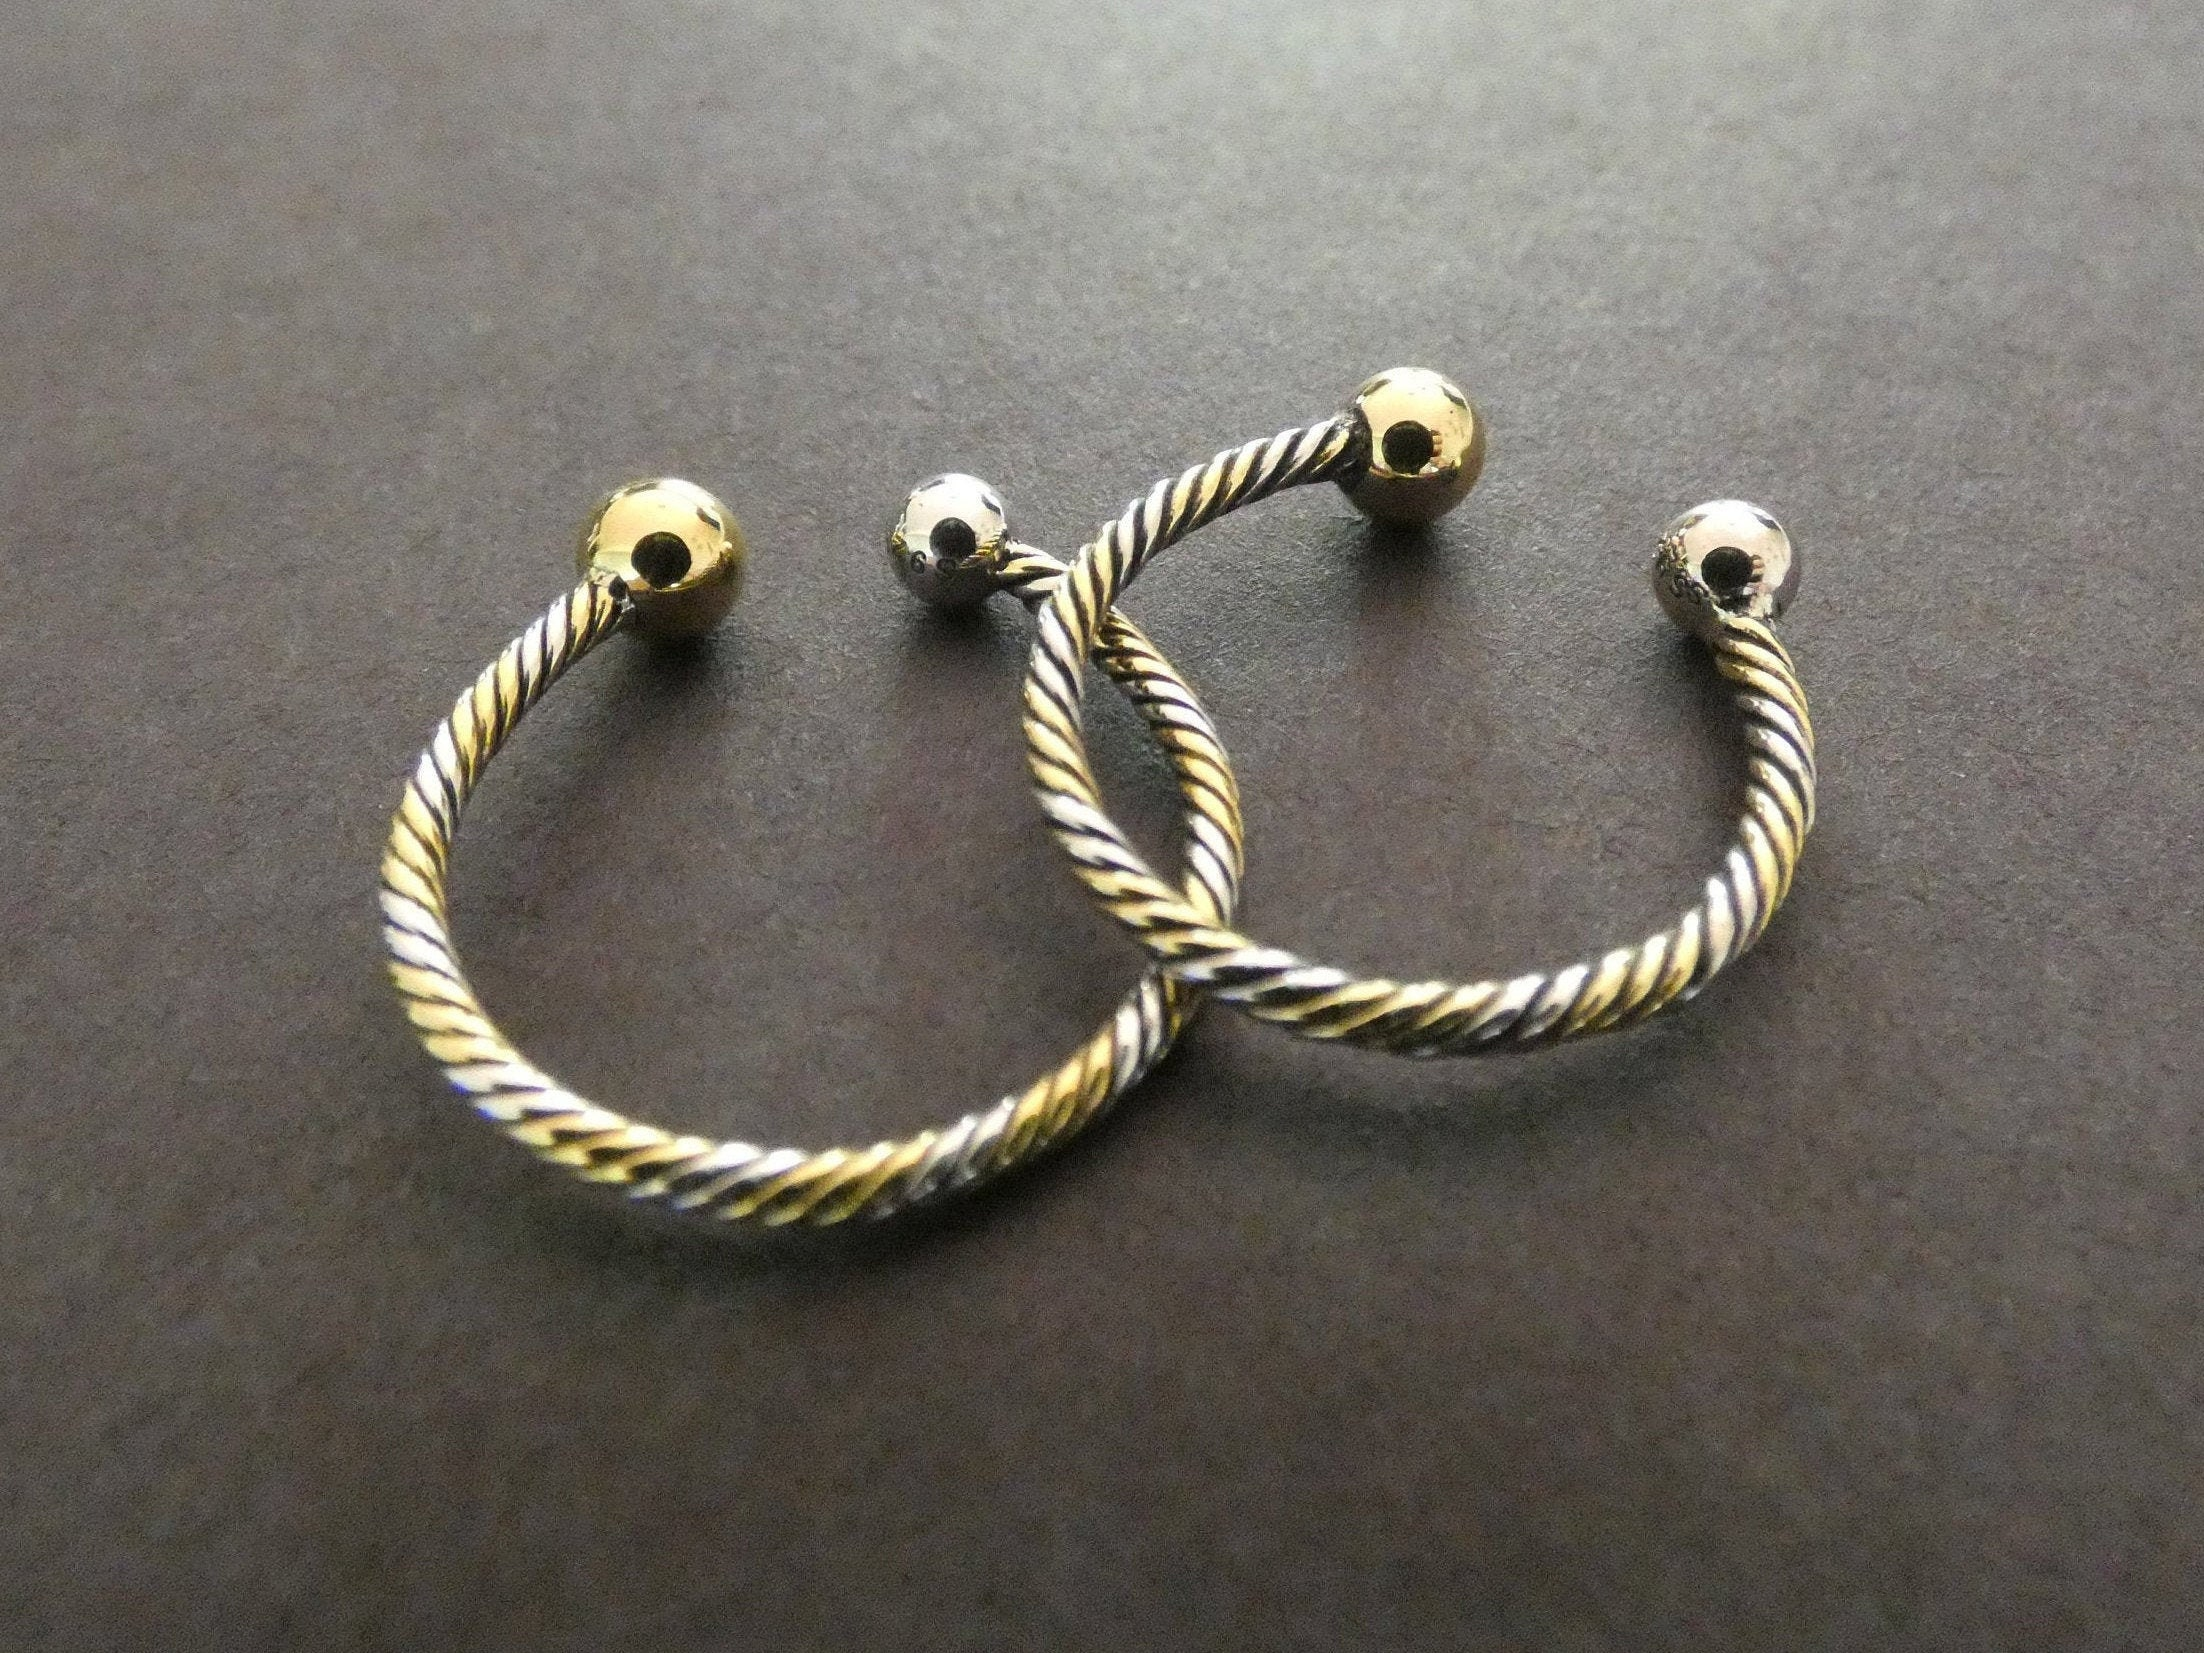 Two Tone Thai Sterling Silver Ring Jewelry For Her Adjustable Silver Band Silver and Gold Colors Link Cuff Ring Twisted Pattern